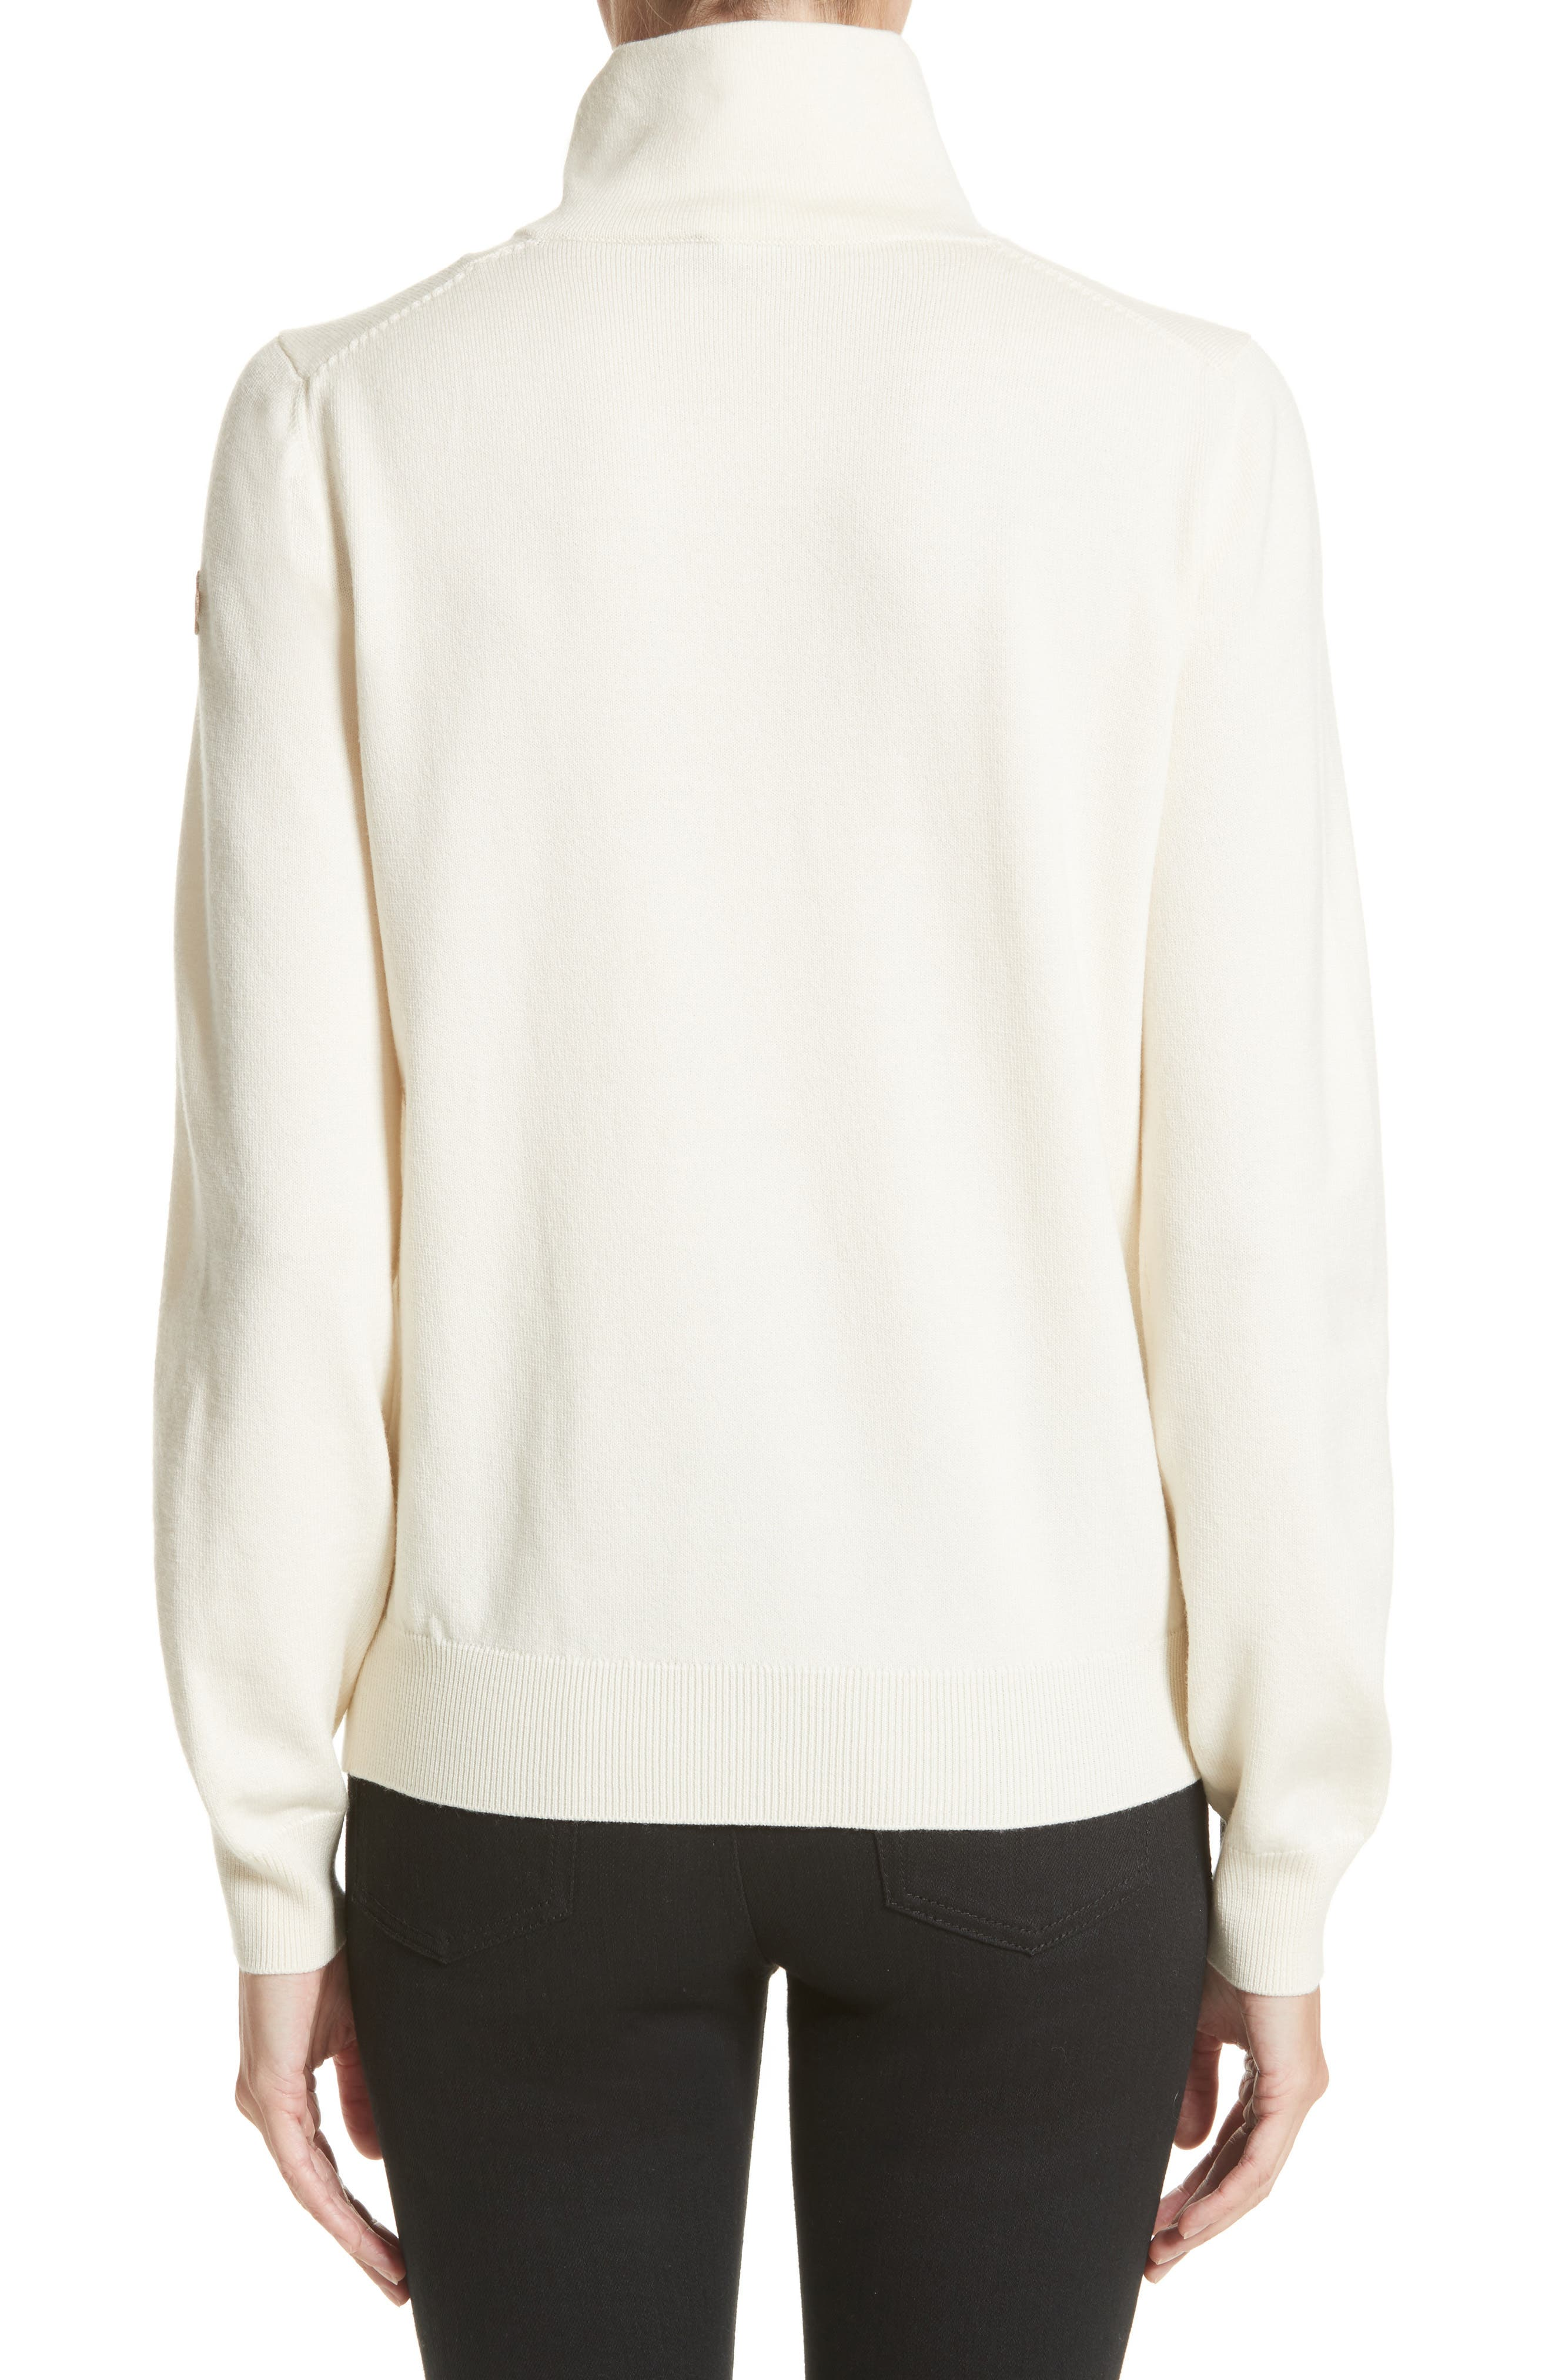 Ciclista Tricot Knit Sweater,                             Alternate thumbnail 2, color,                             WHITE